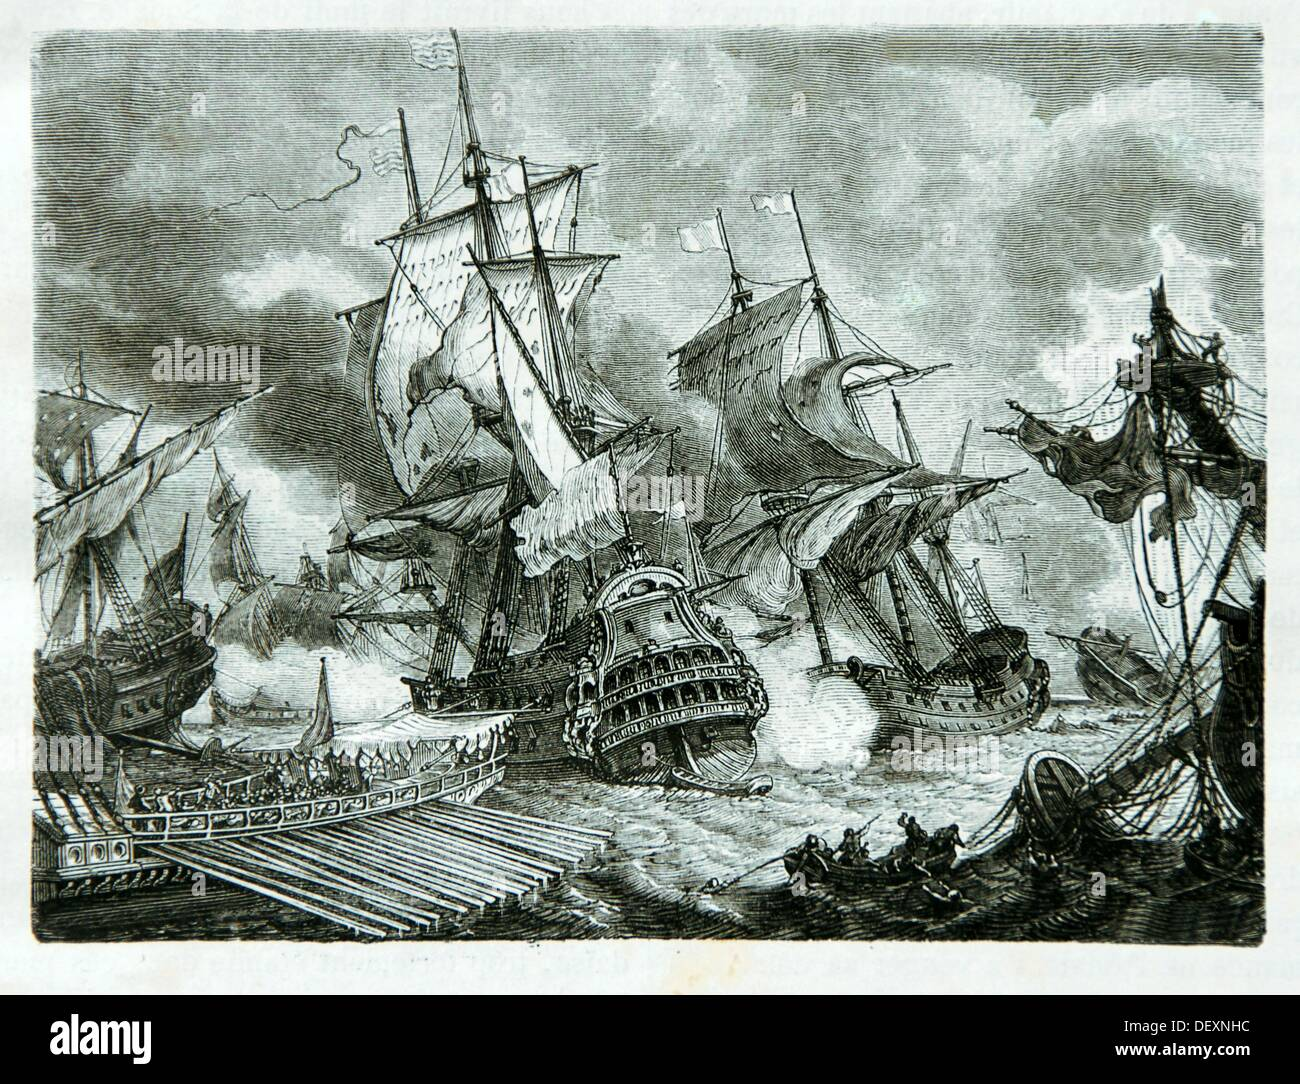 Battle of Palermo on 2 June 1676 during the Franco-Dutch War - Stock Image